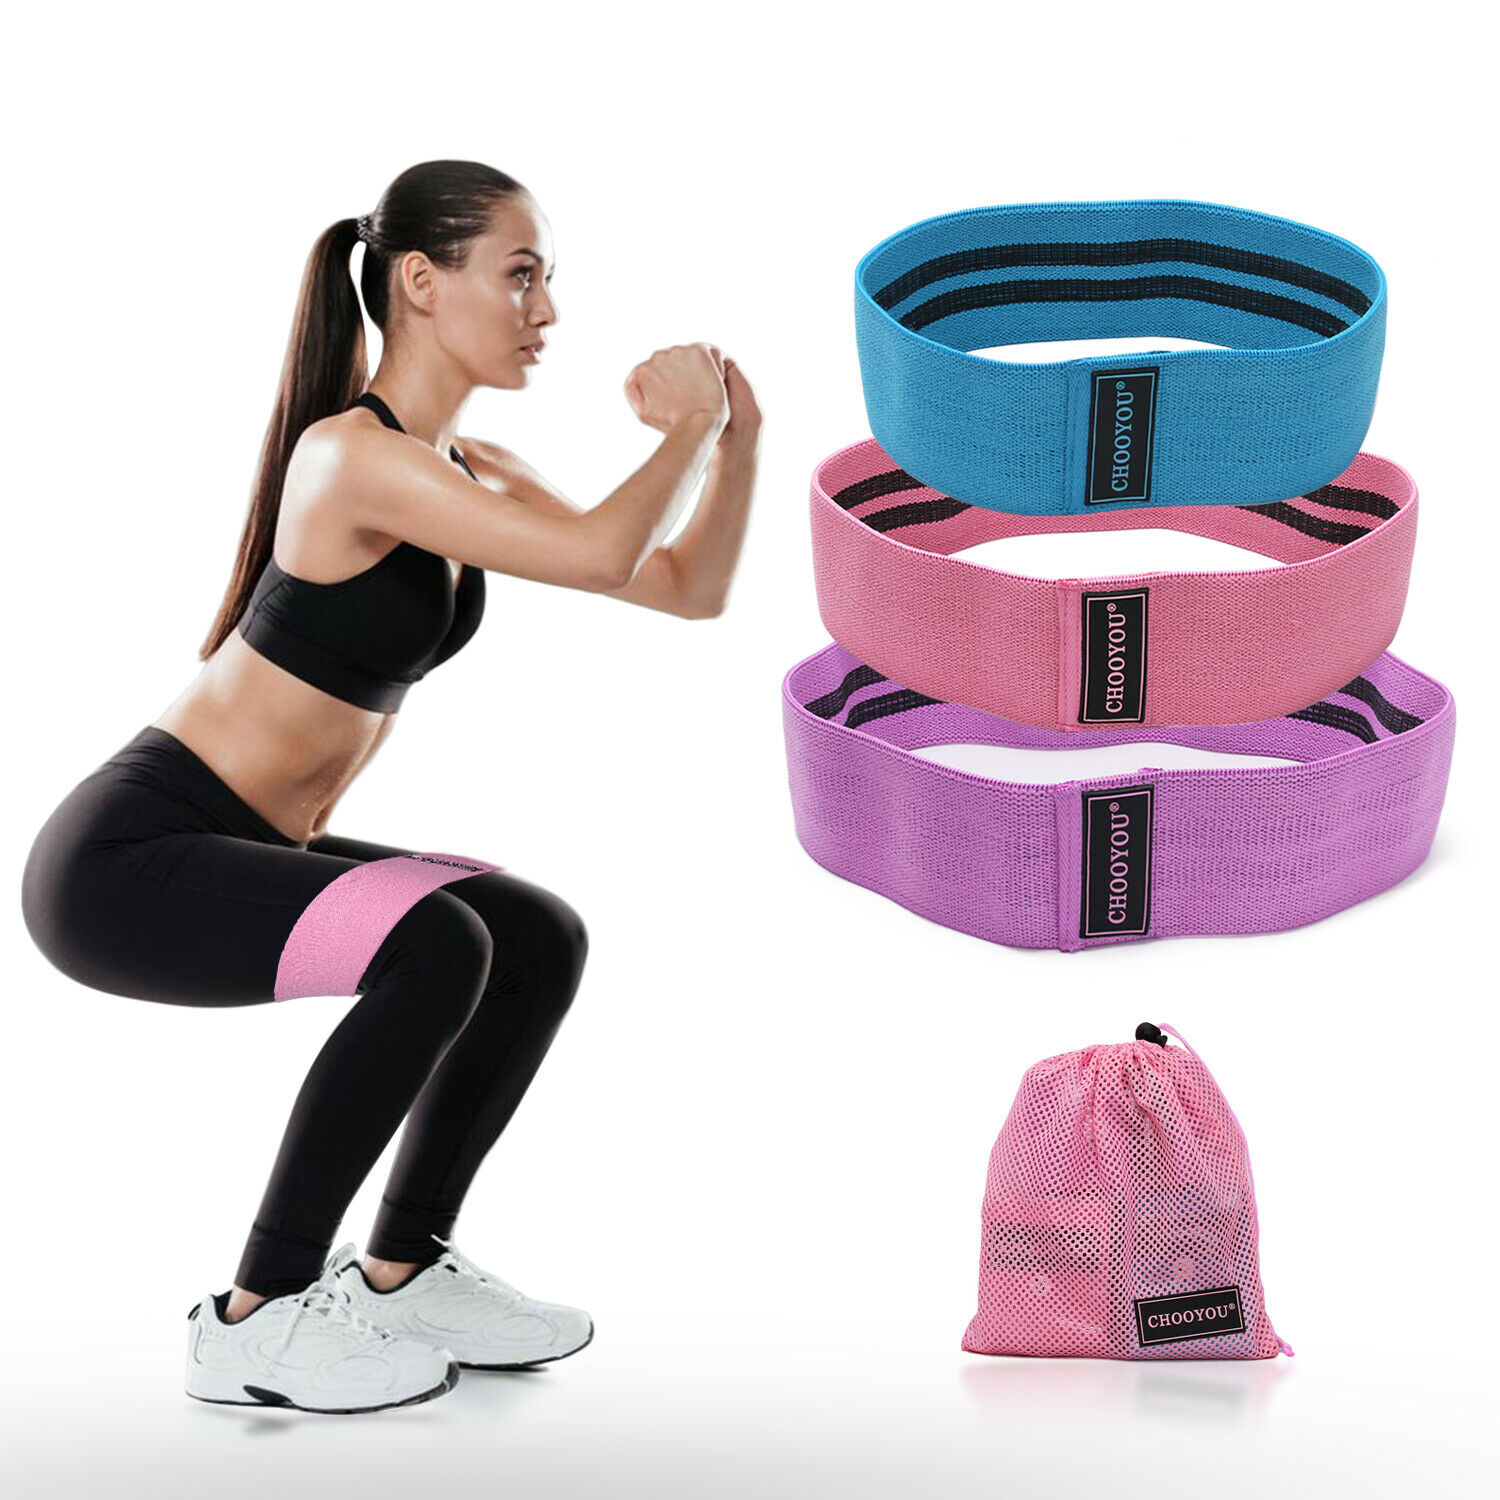 Resistance Band Exercise Ballet Stretching Band Aerobic Flexibility Gym Yoga Stretching Training Fitness Workout Band Pull Up